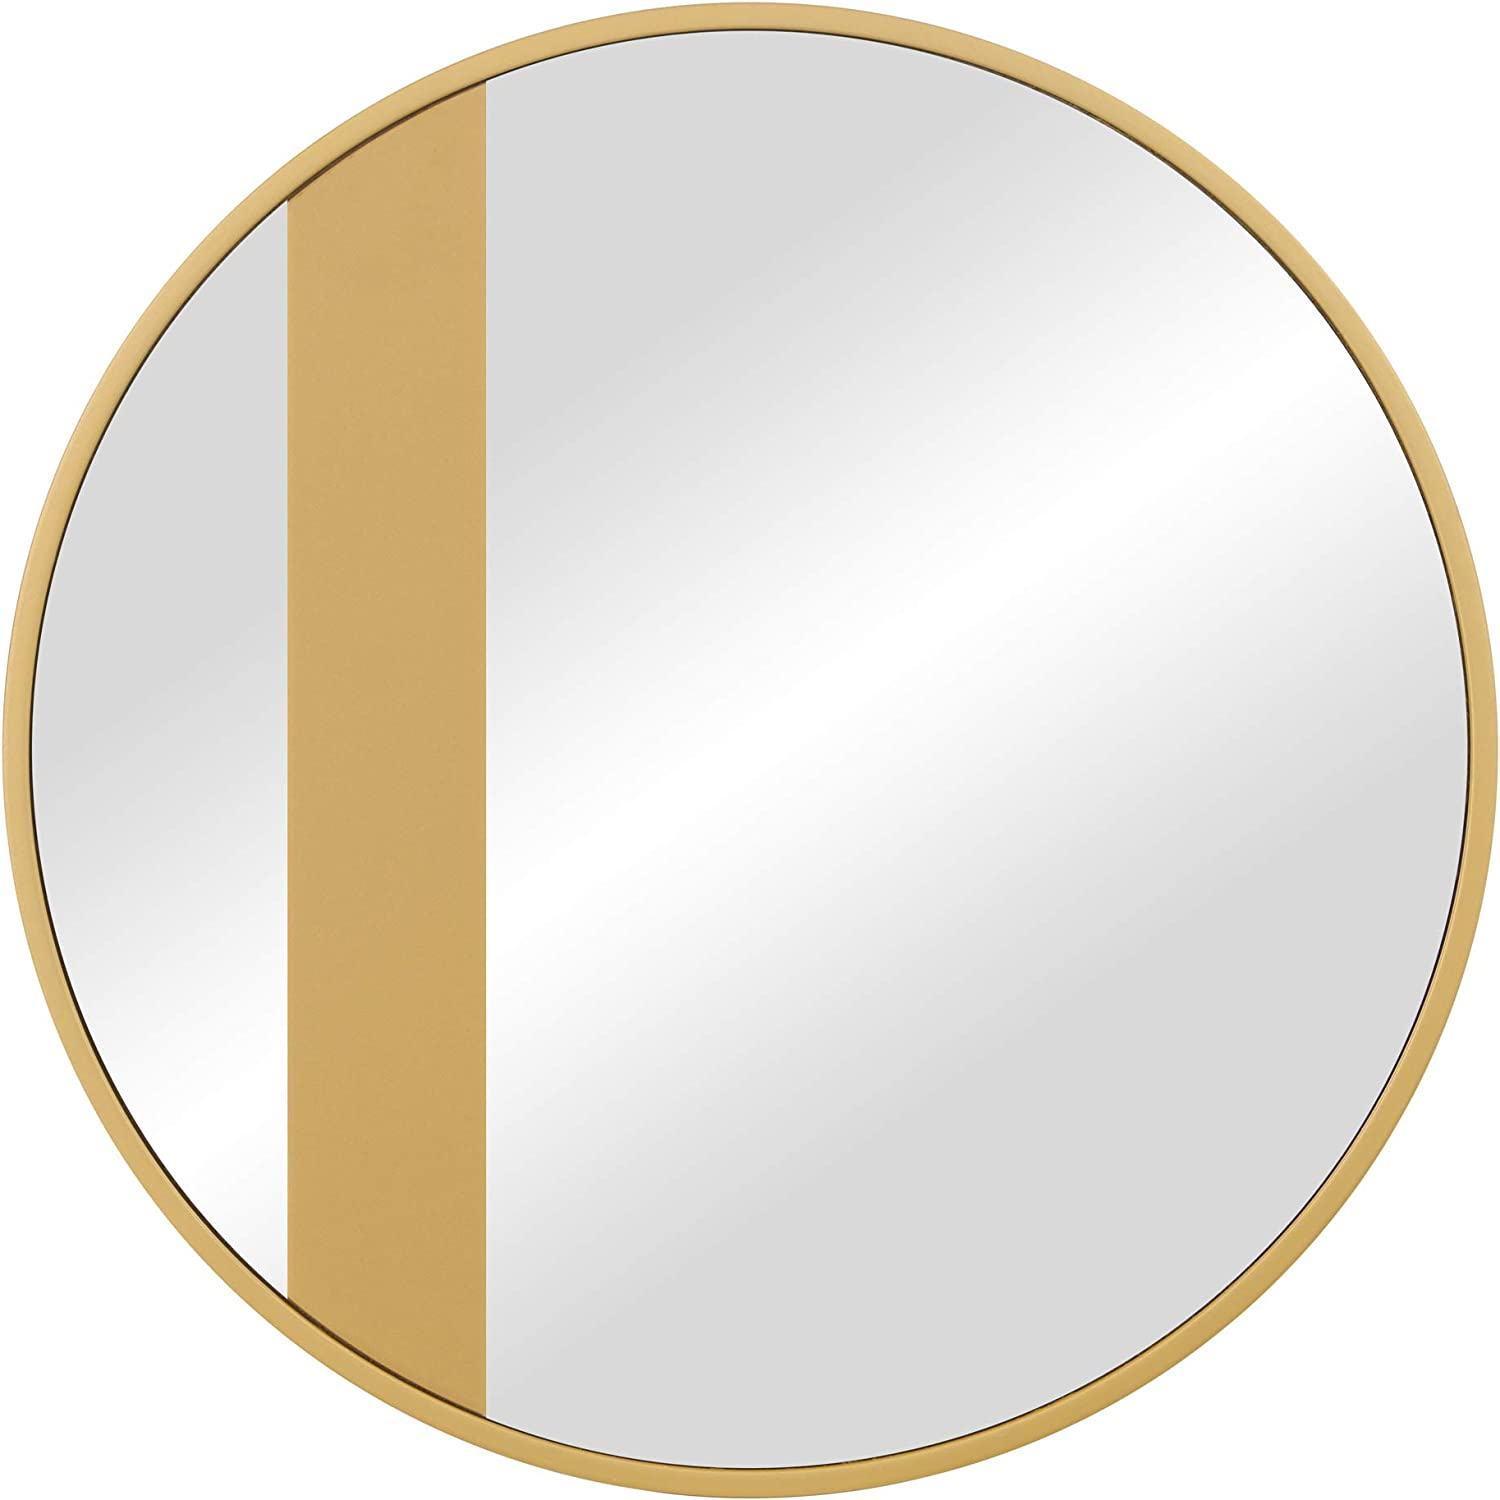 Pinnacle Frames and Accents Mirror, gold